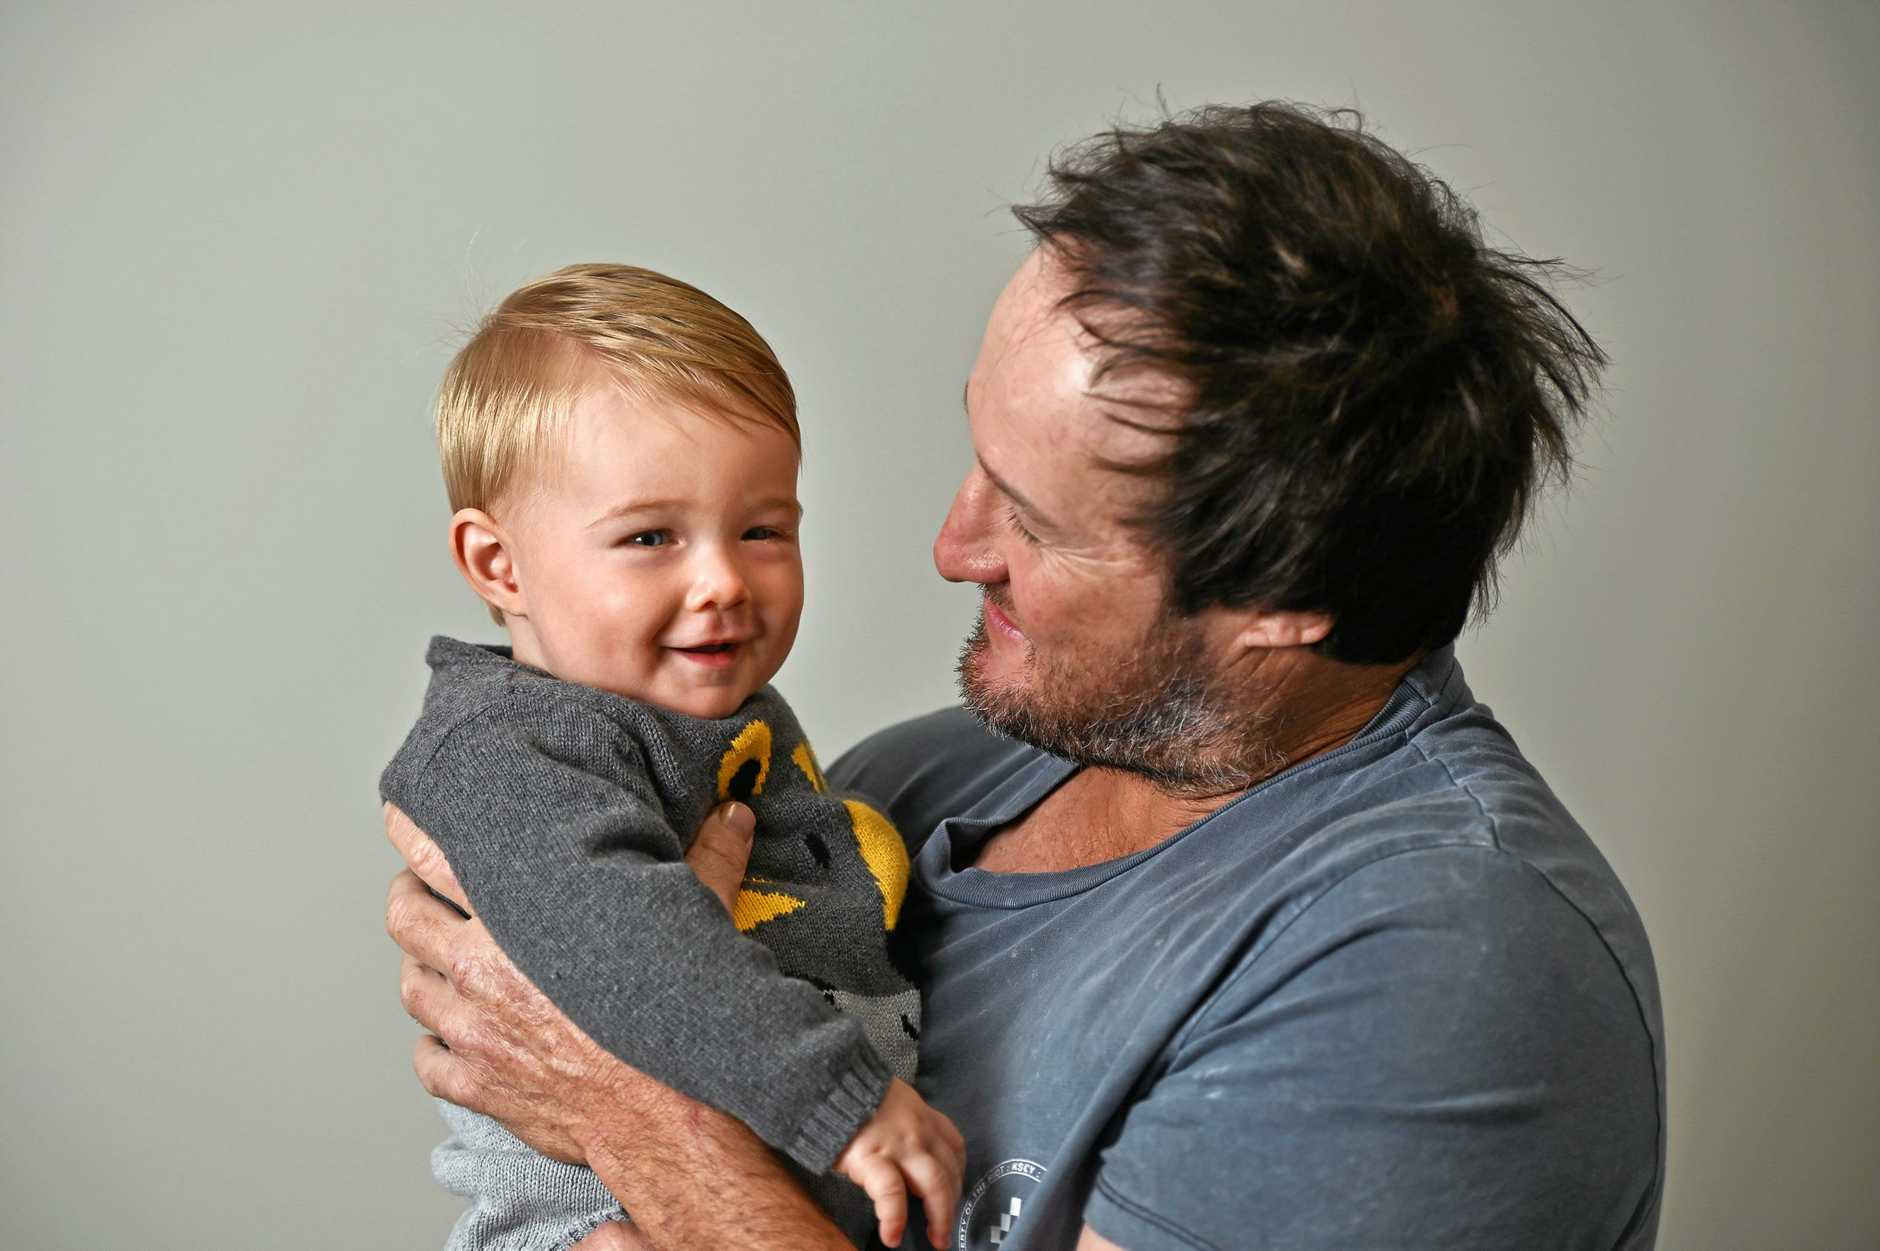 Clint Scott with son Leo, who turns 1 in September.